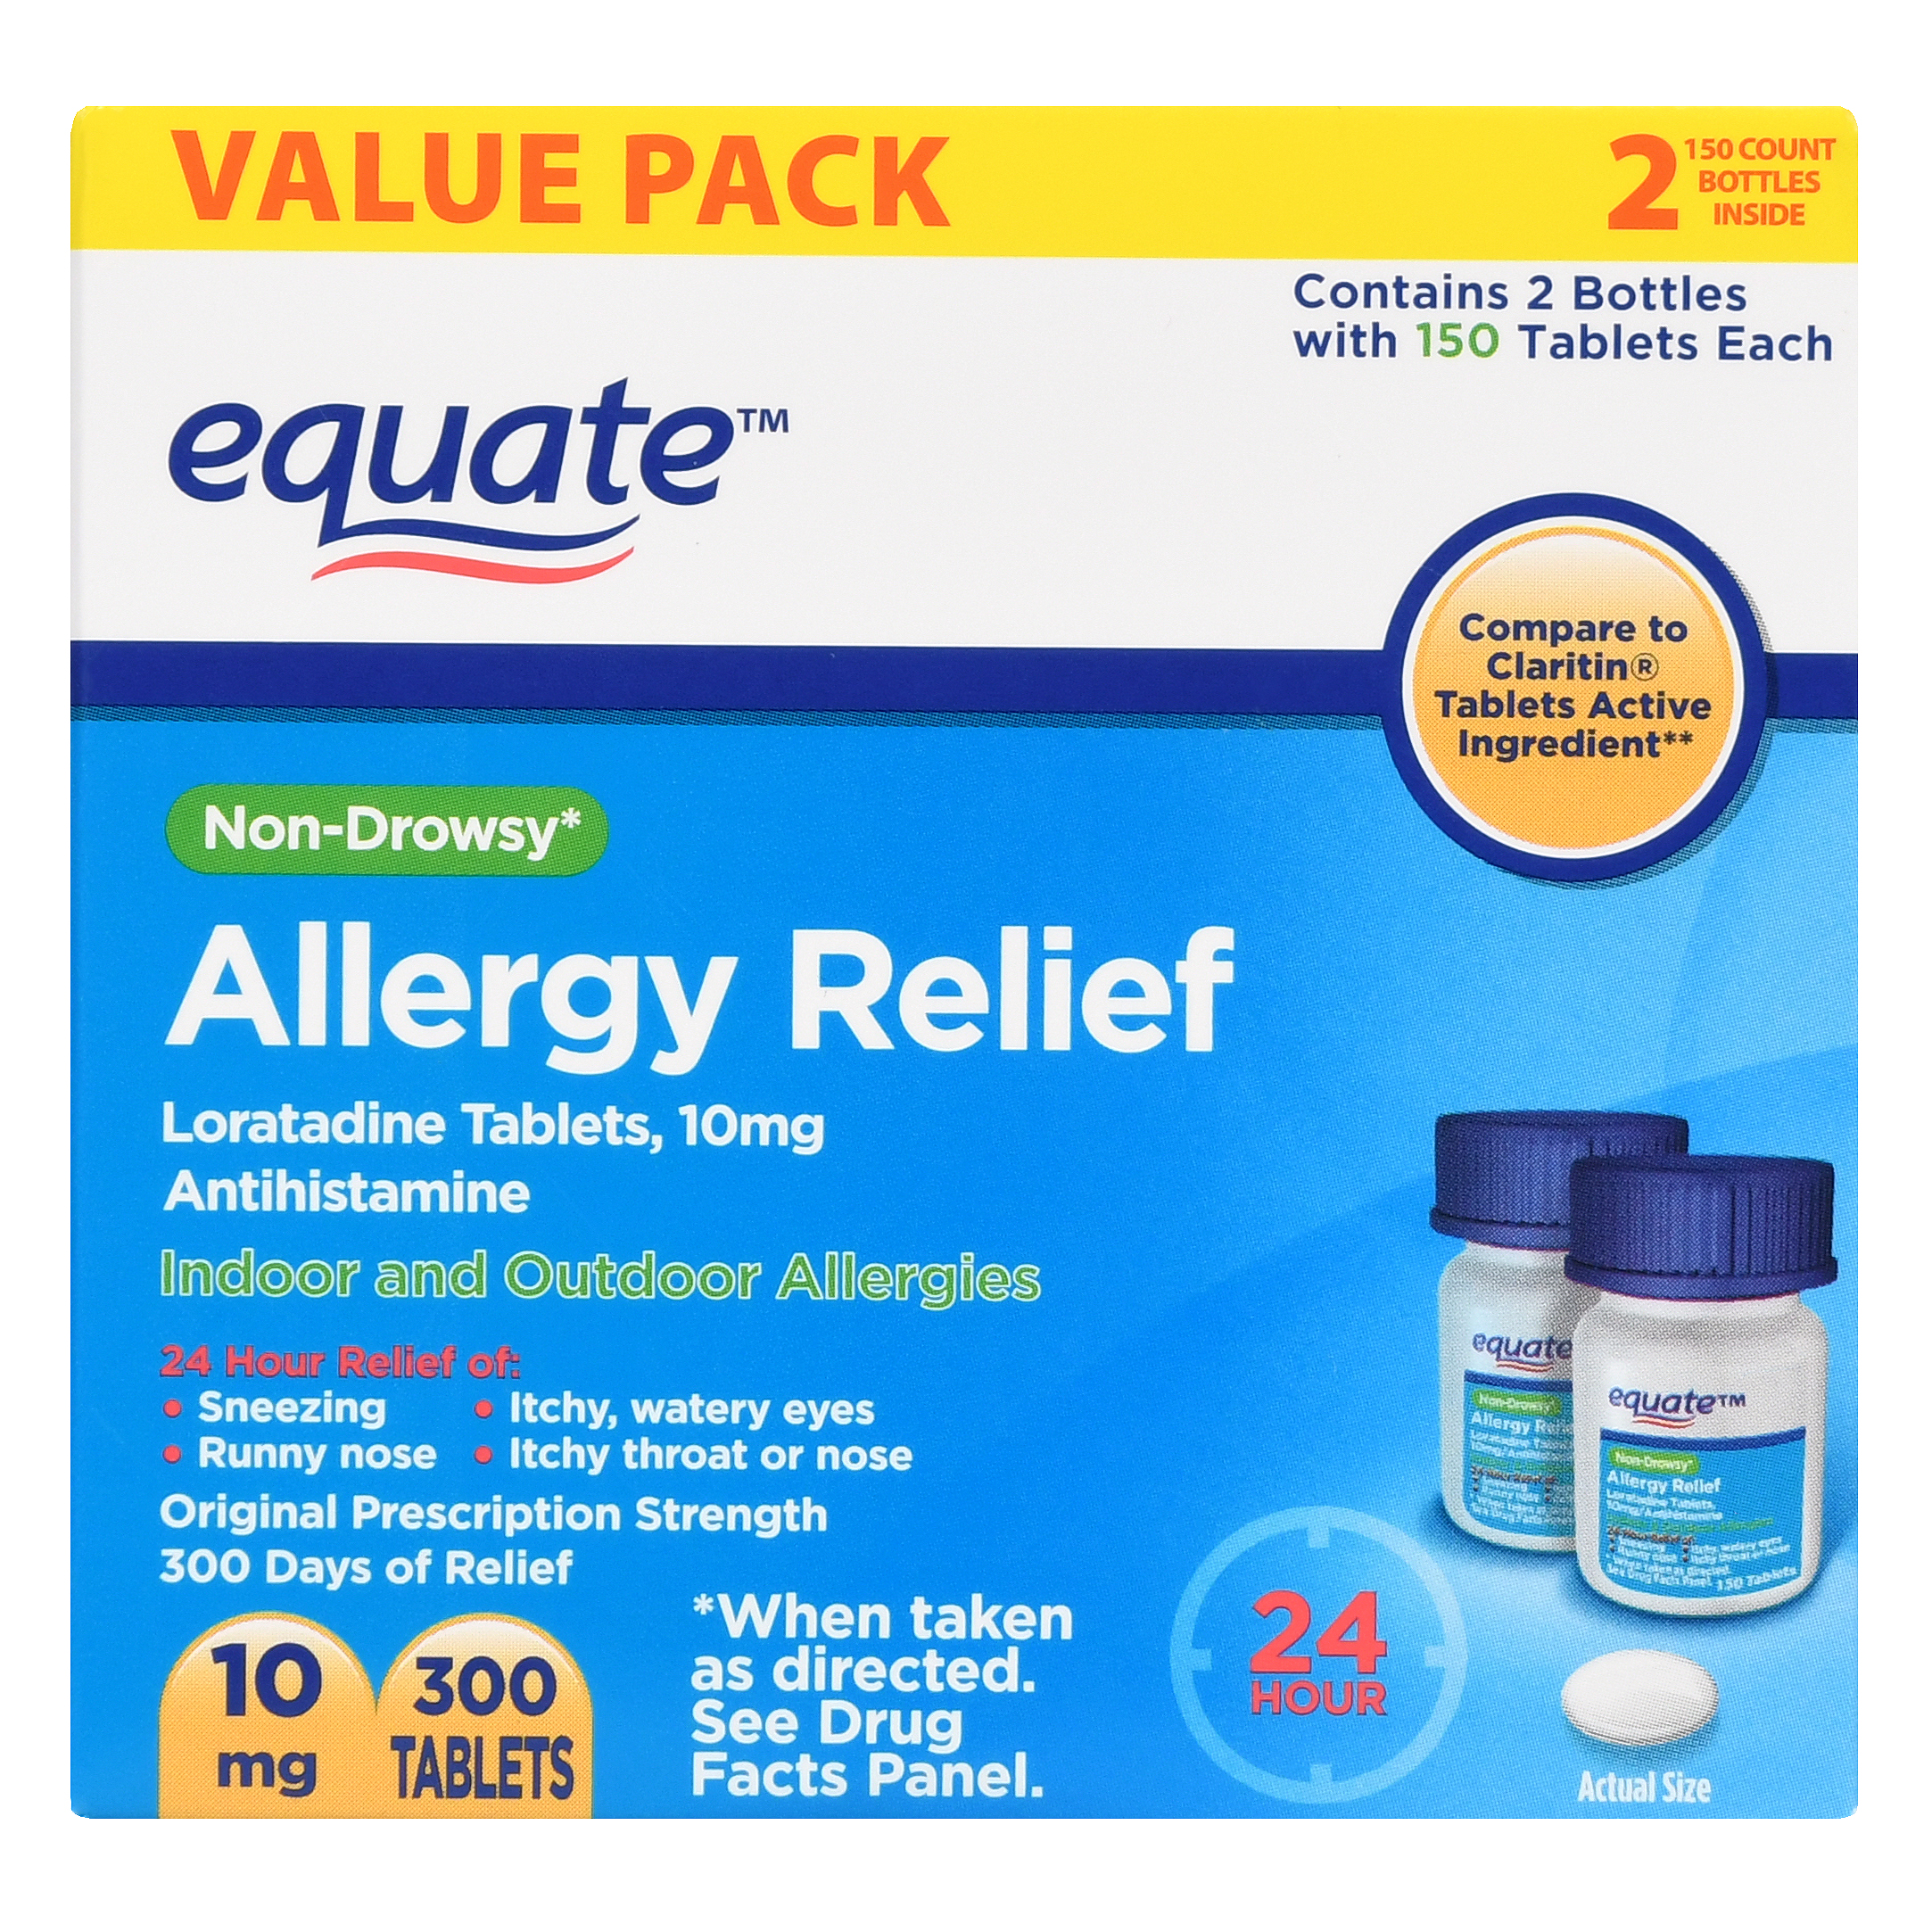 Equate 24 Hour Allergy Relief Loratadine Tablets, 10 mg, 300 Ct - Walmart.com at Walmart - Vision Center in Connersville, IN | Tuggl